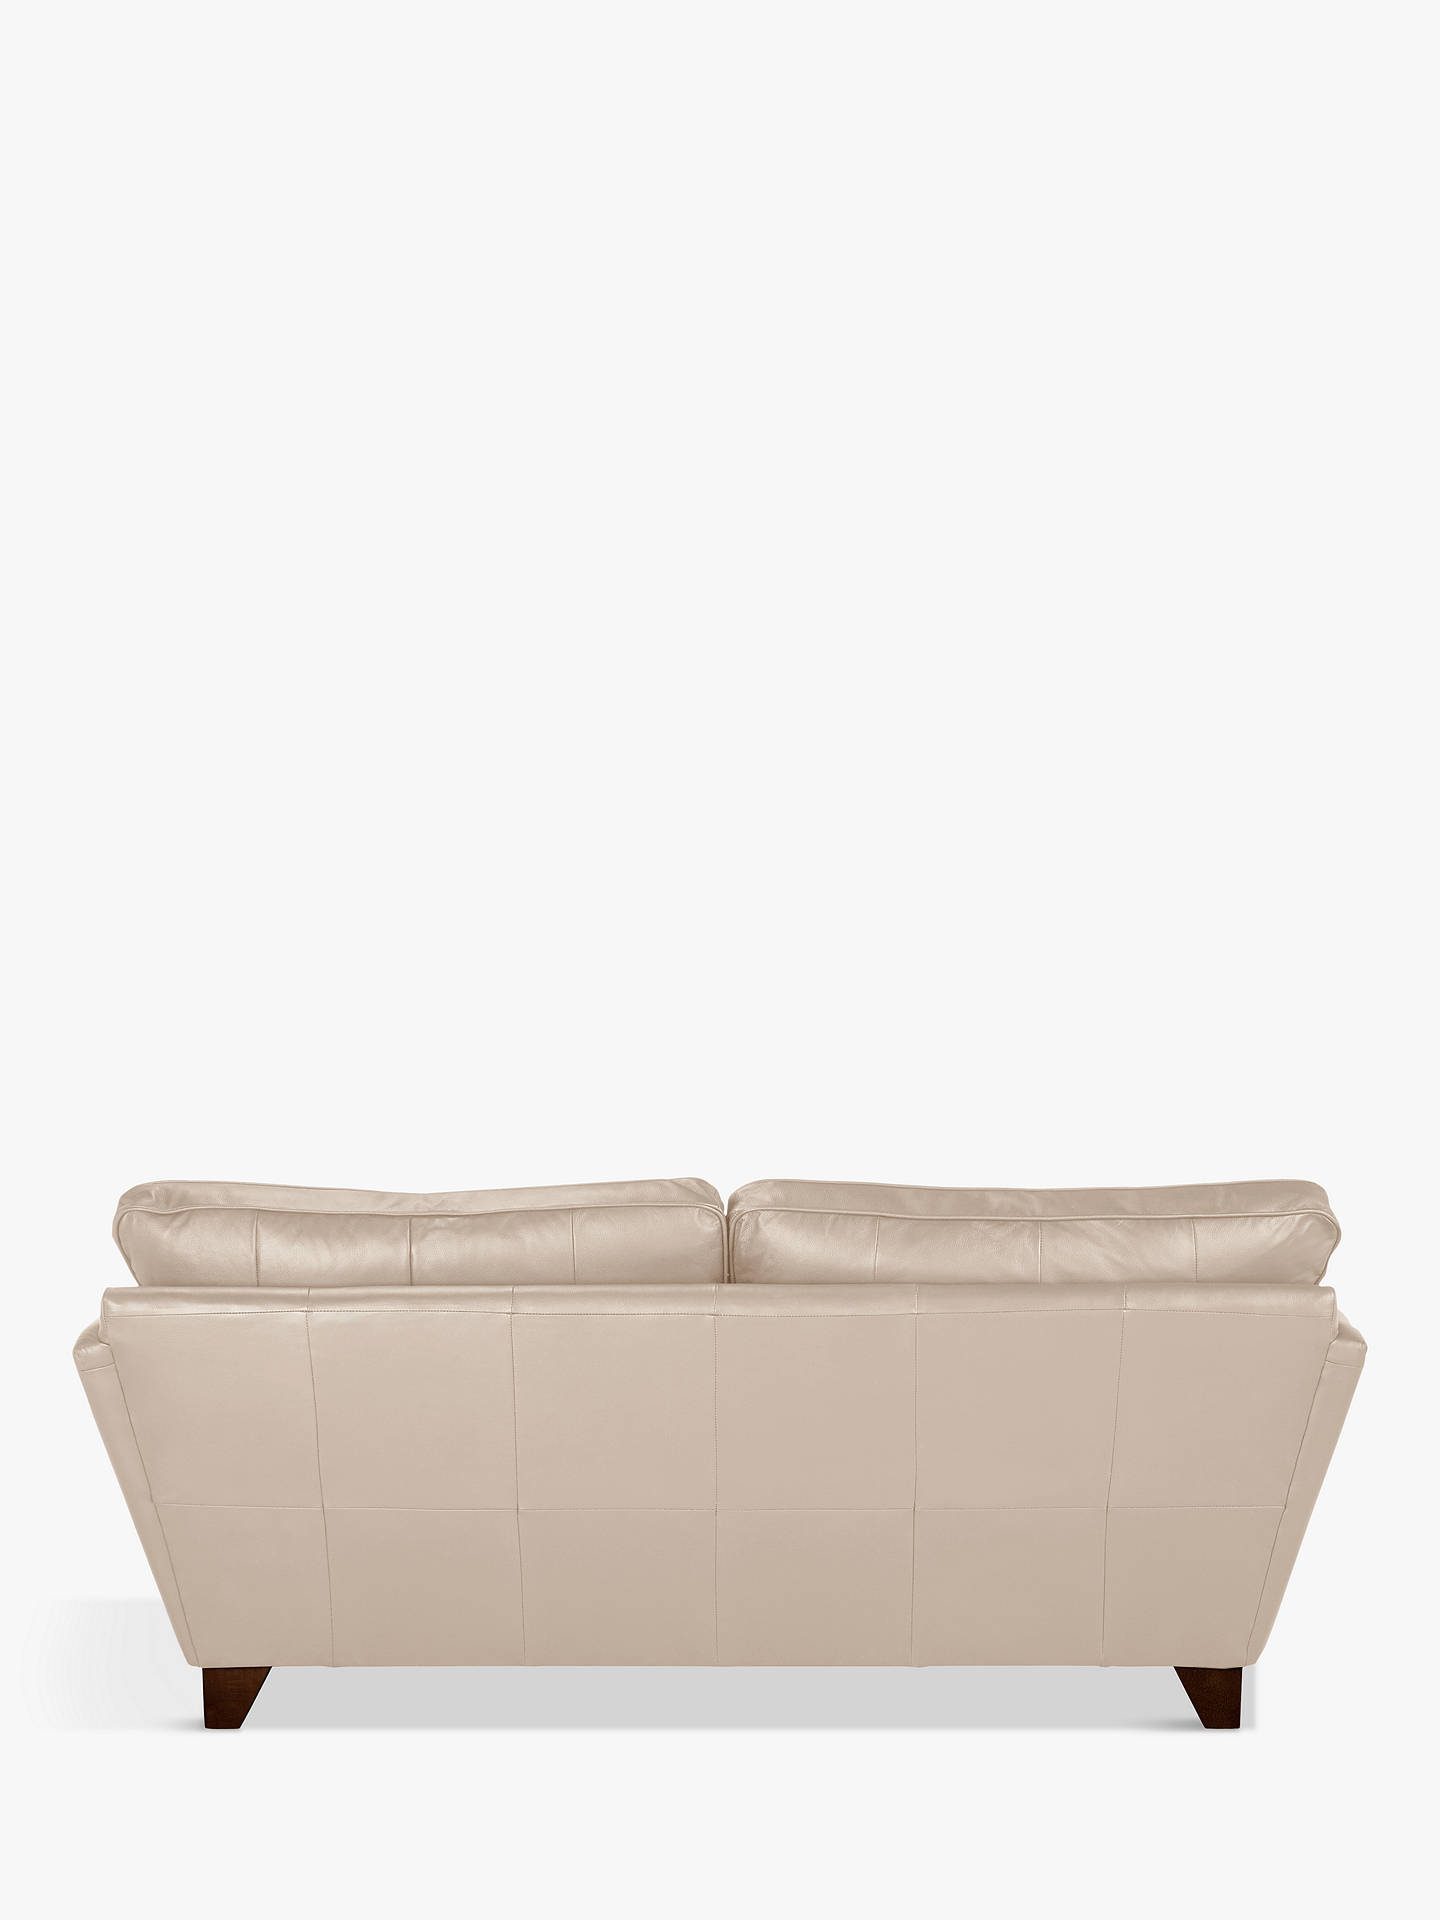 Buy John Lewis & Partners Oslo Leather Large 3 Seater Sofa, Dark Leg, Nature Putty Online at johnlewis.com